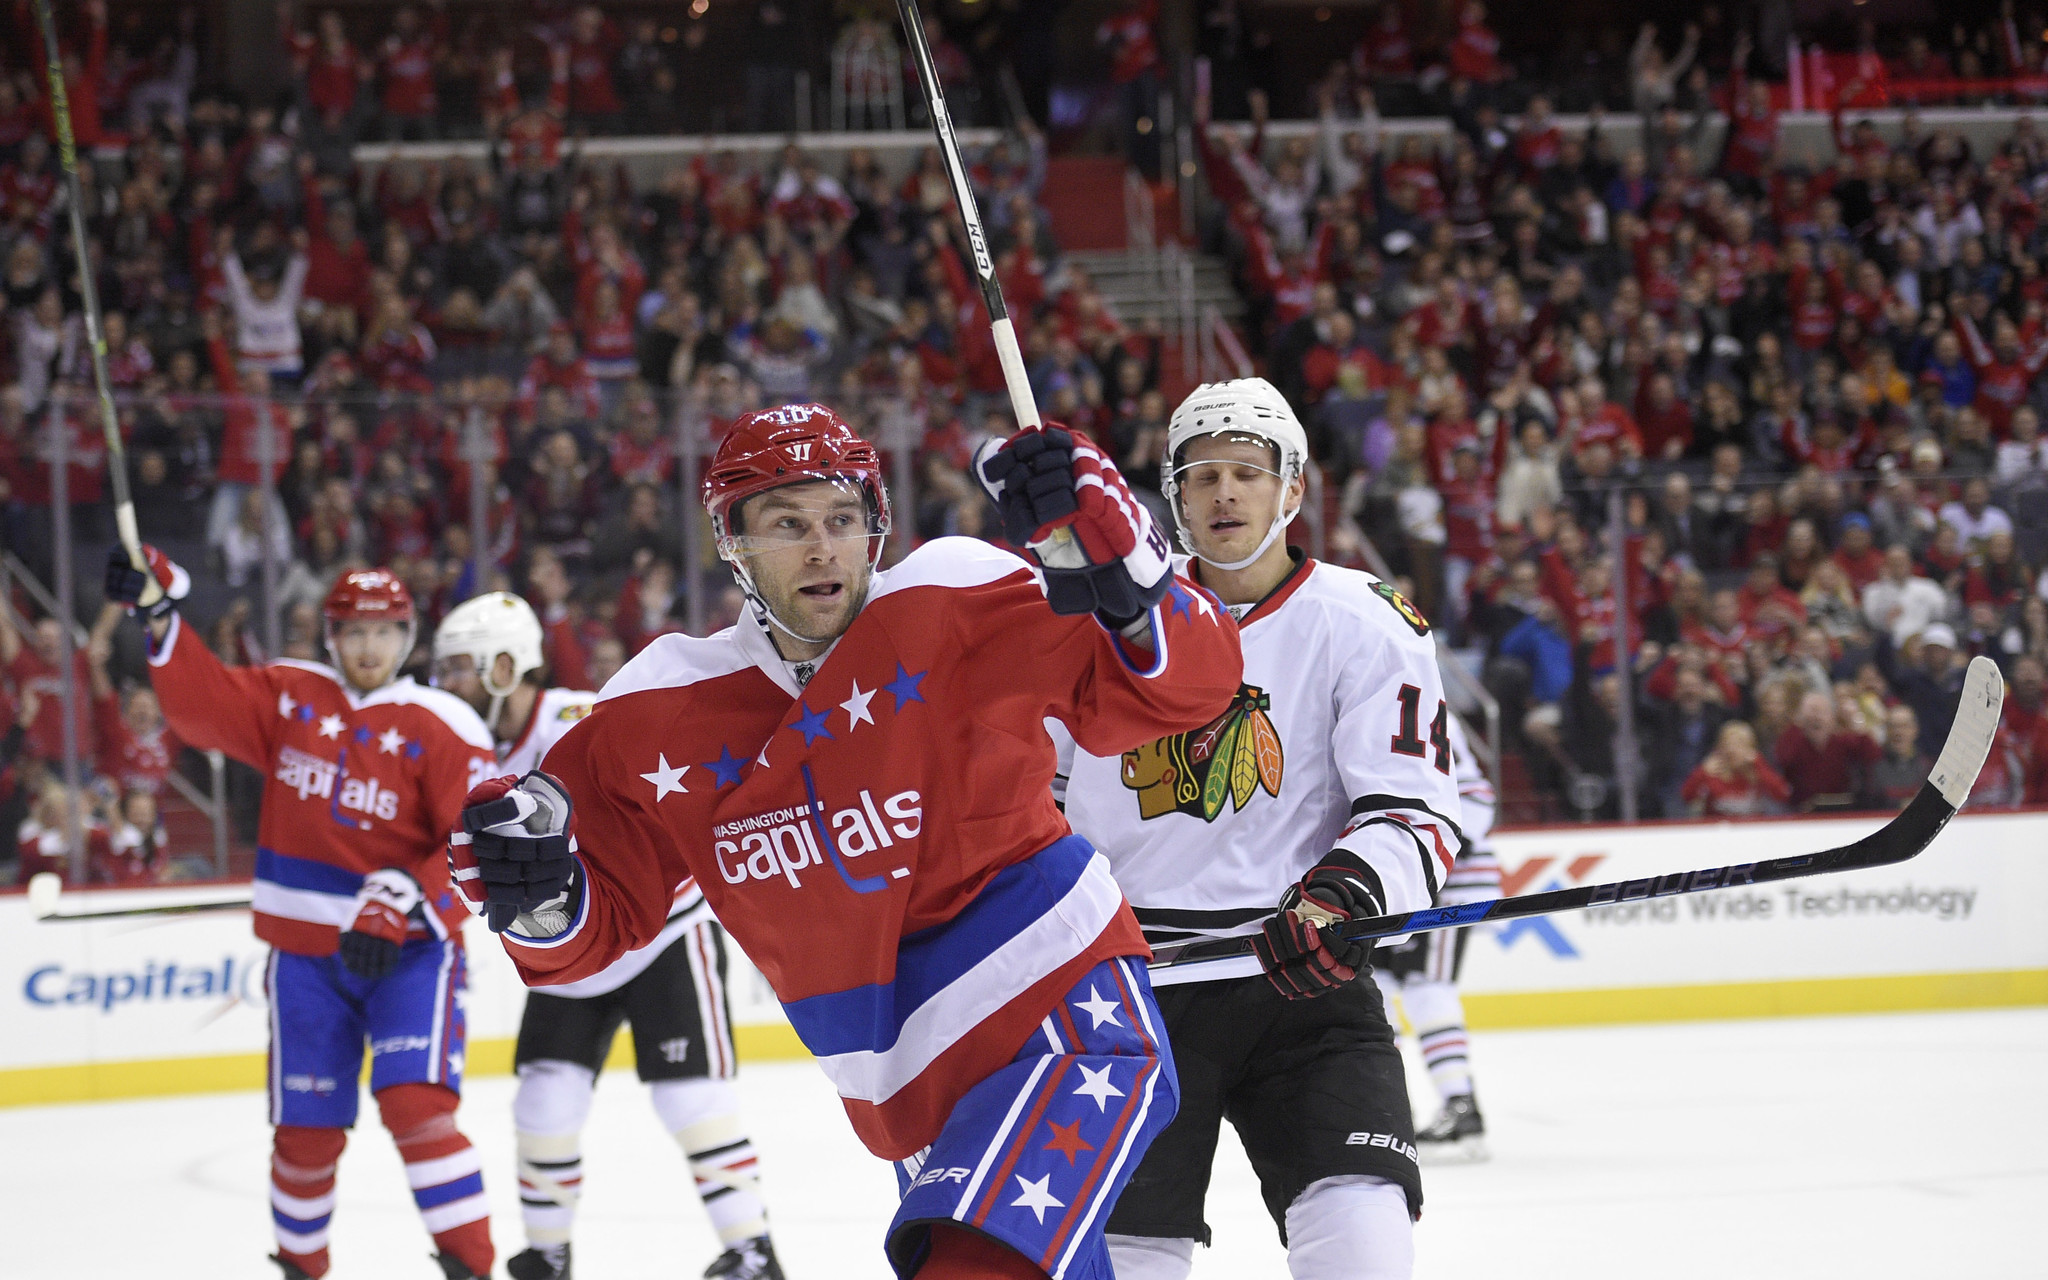 Blackhawks fall 6-0 to Capitals in their most lopsided loss since 2011